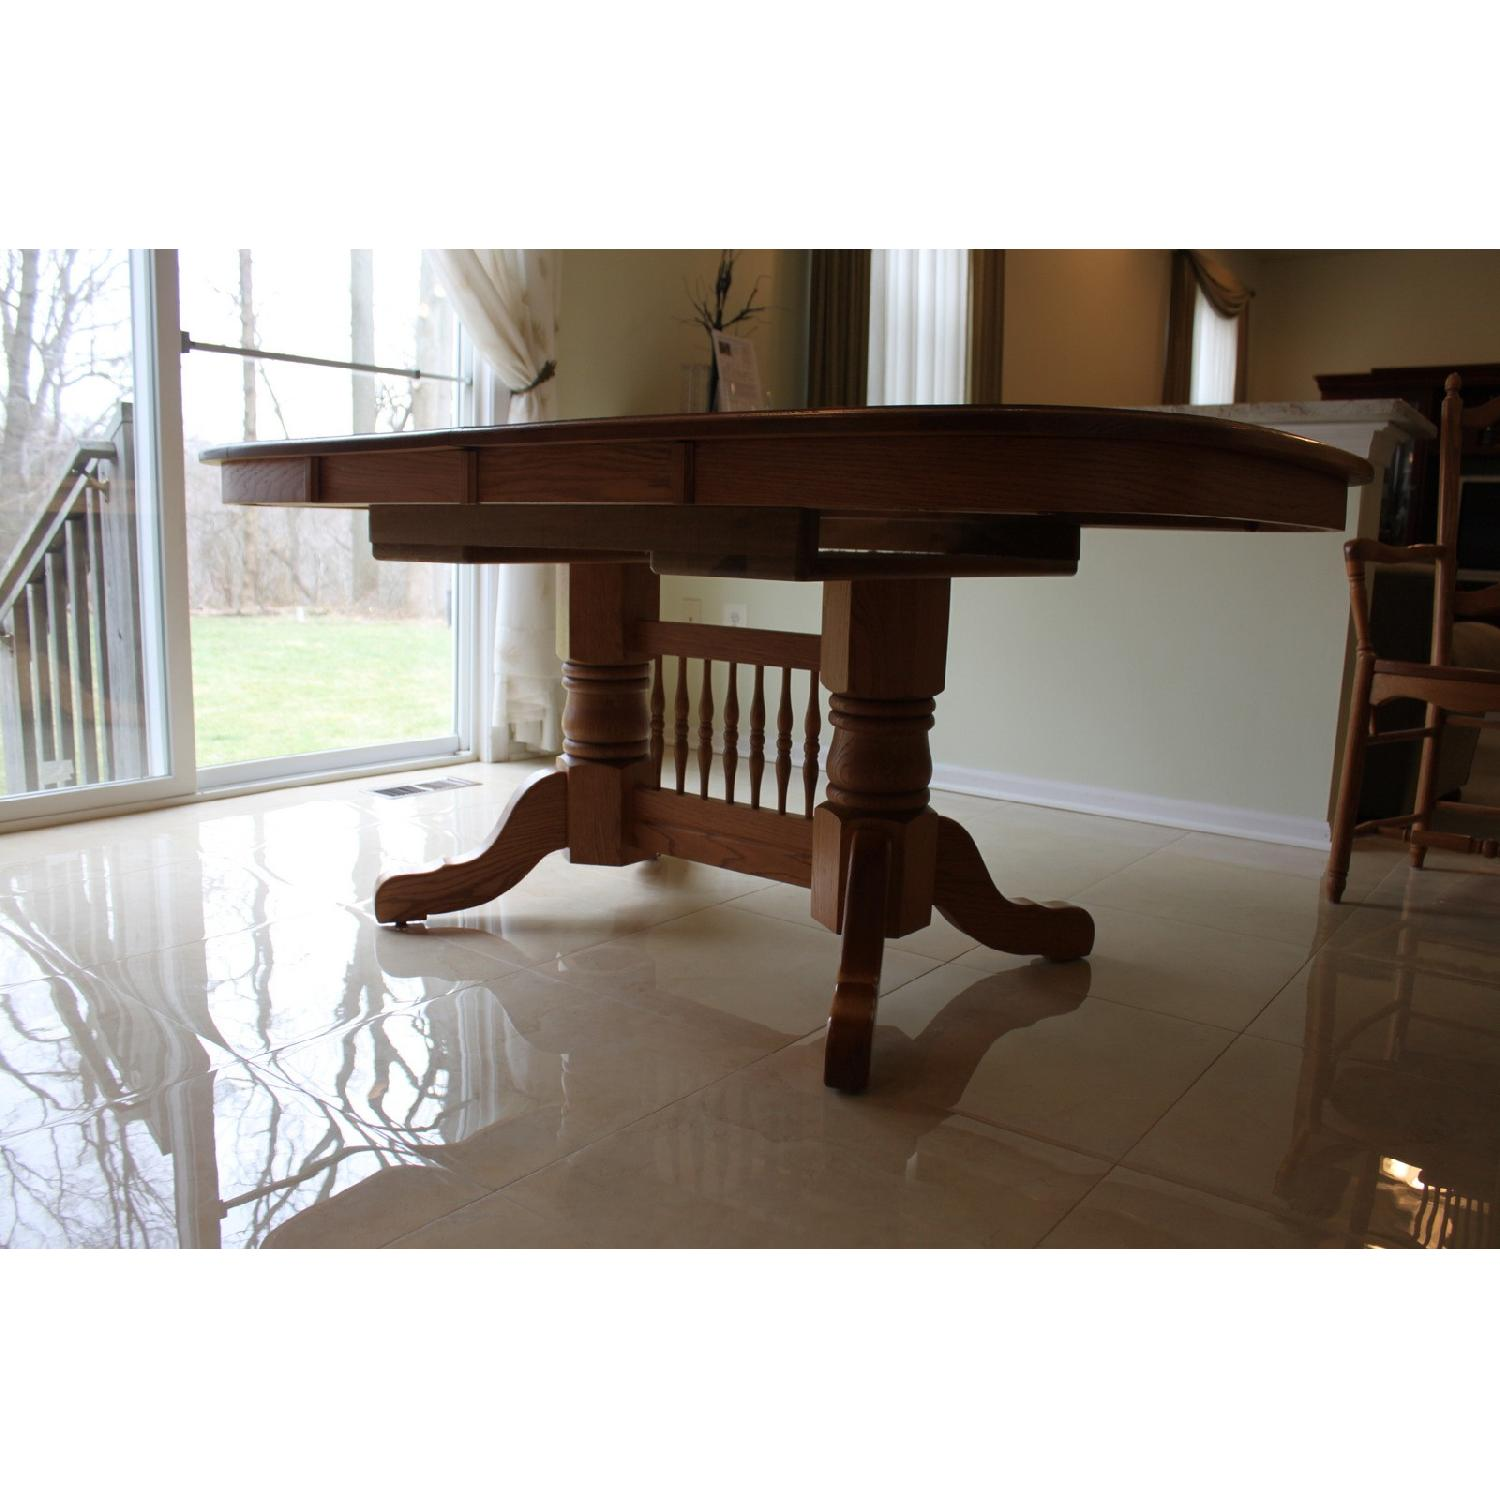 Dining Room 6 Chairs Part - 32: ... Edrich Mills Wood Shop Dining Table W/ 6 Chairs-1 ...